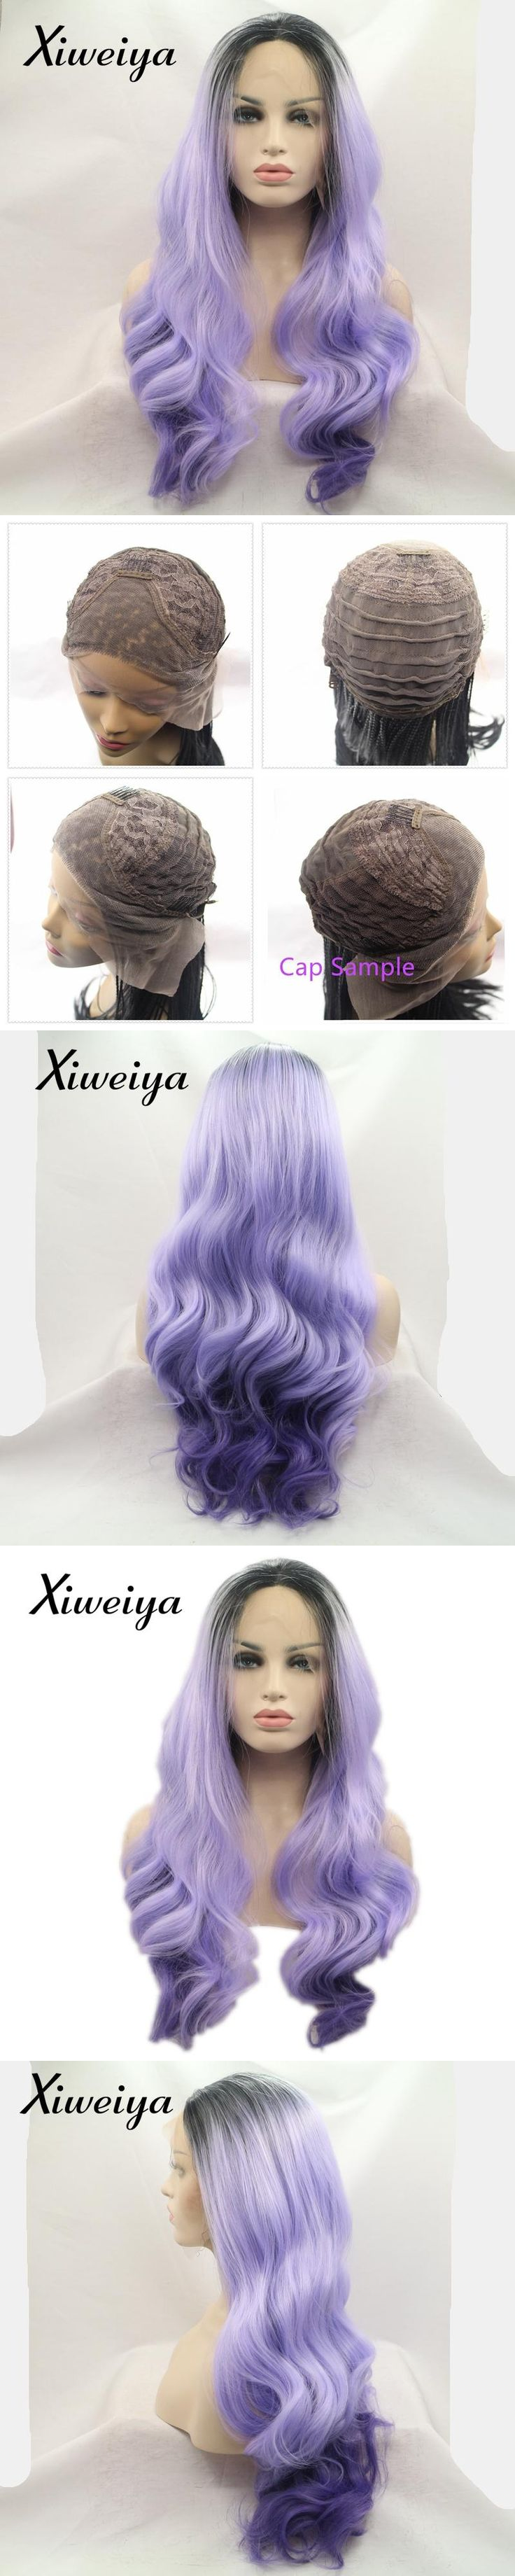 Xiweiya Heat resistant Synthetic lace front wig purple dark root white women nature wave hair replace wig glueless drag queen